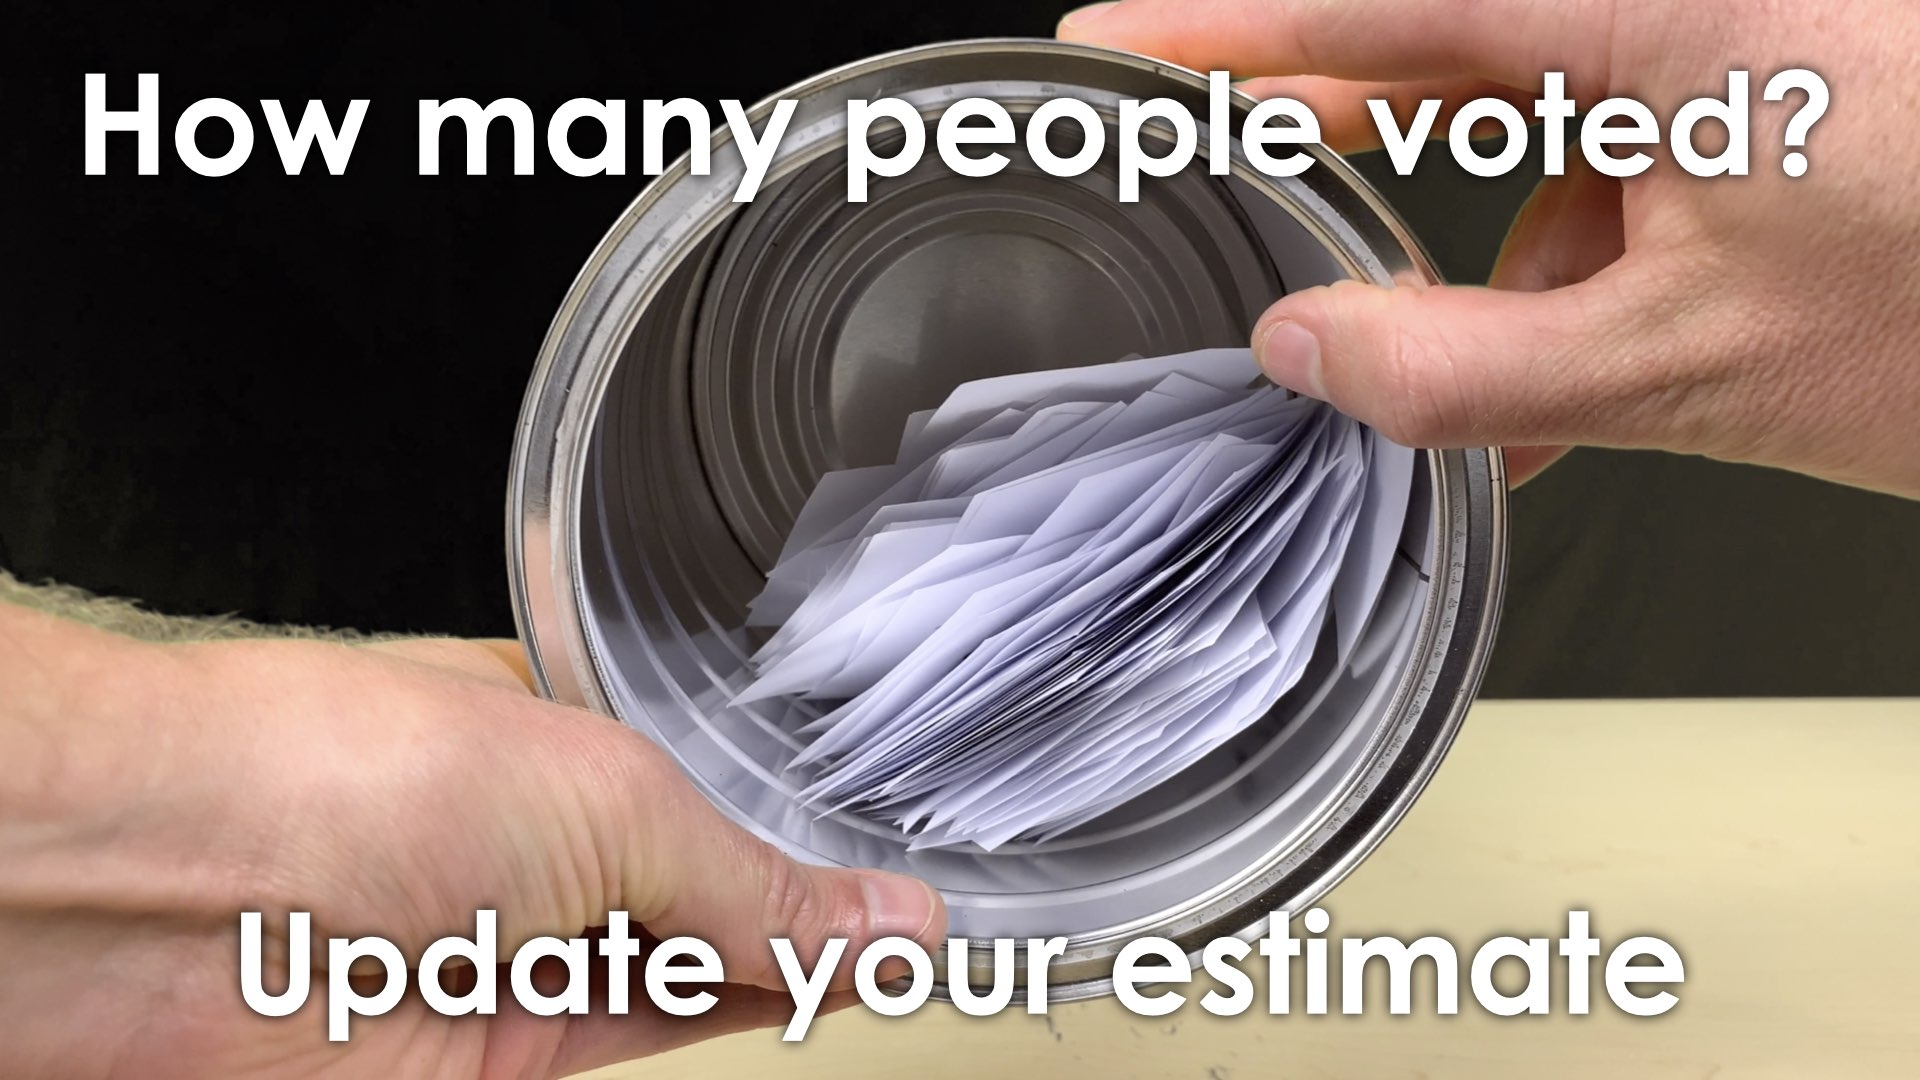 MMM Voting Booth Lesson.017 SPARK update esimate